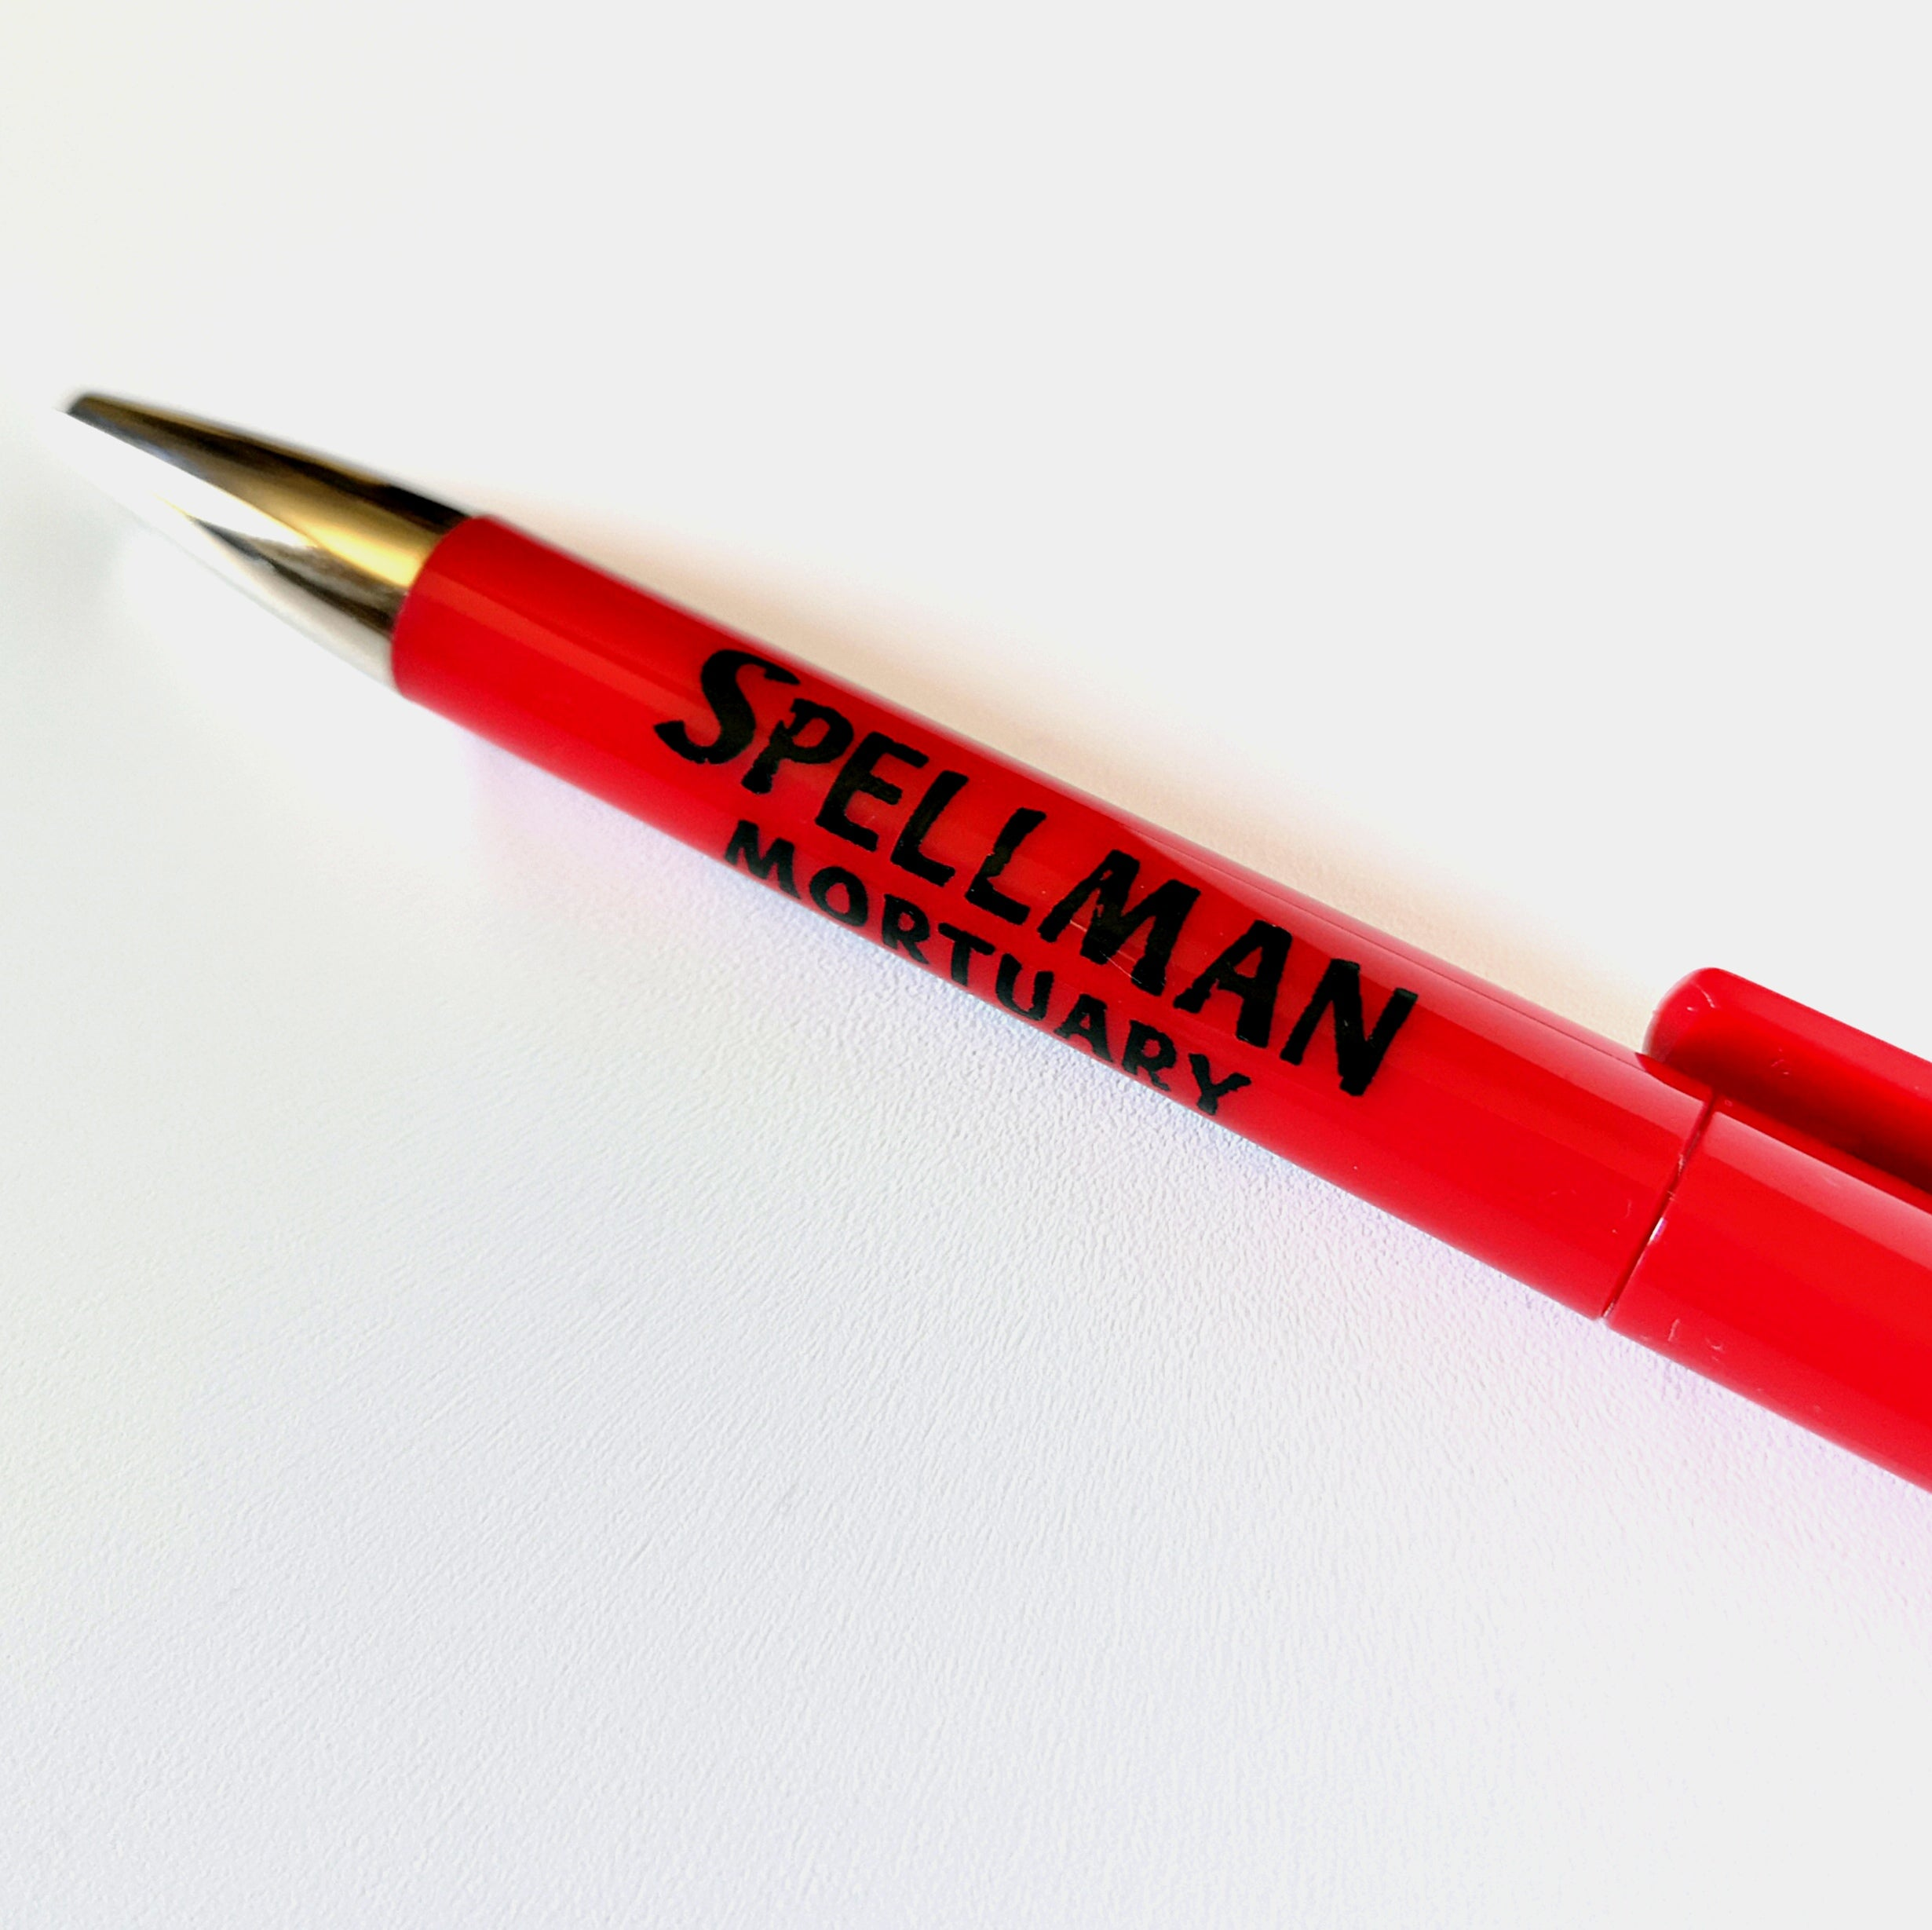 Spellman Mortuary Inspired Pen